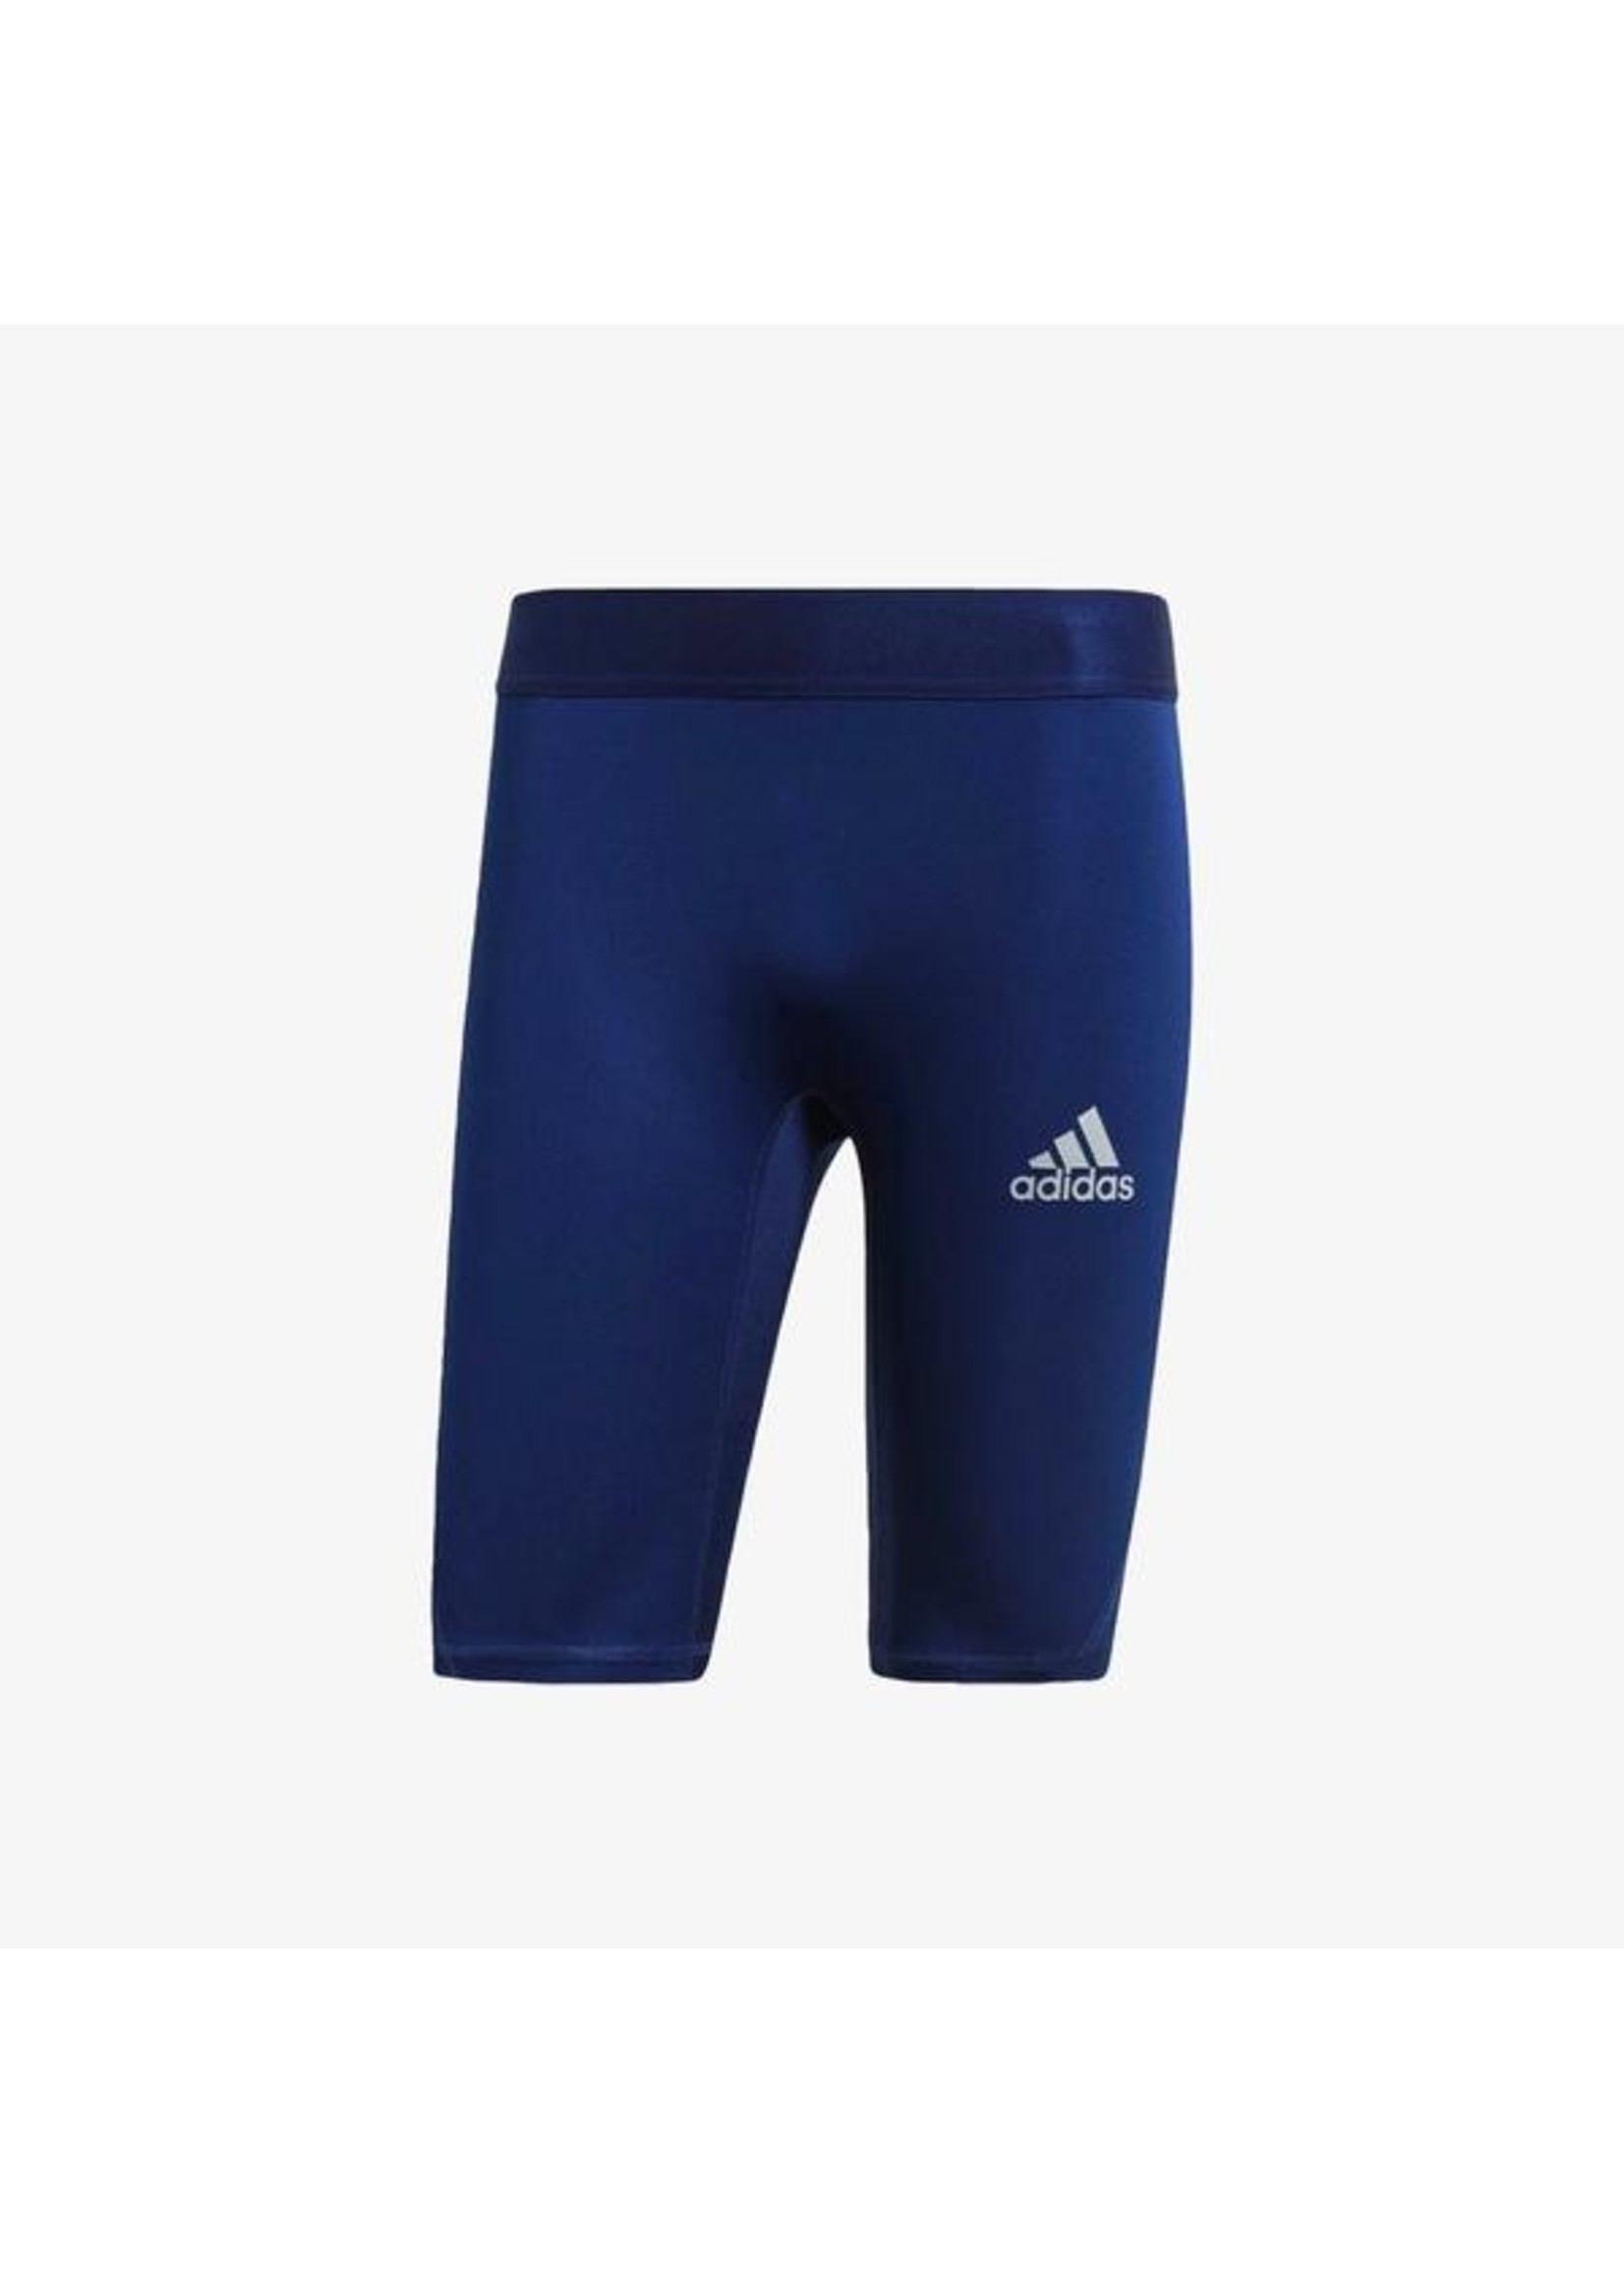 Adidas Compression Navy Short Youth